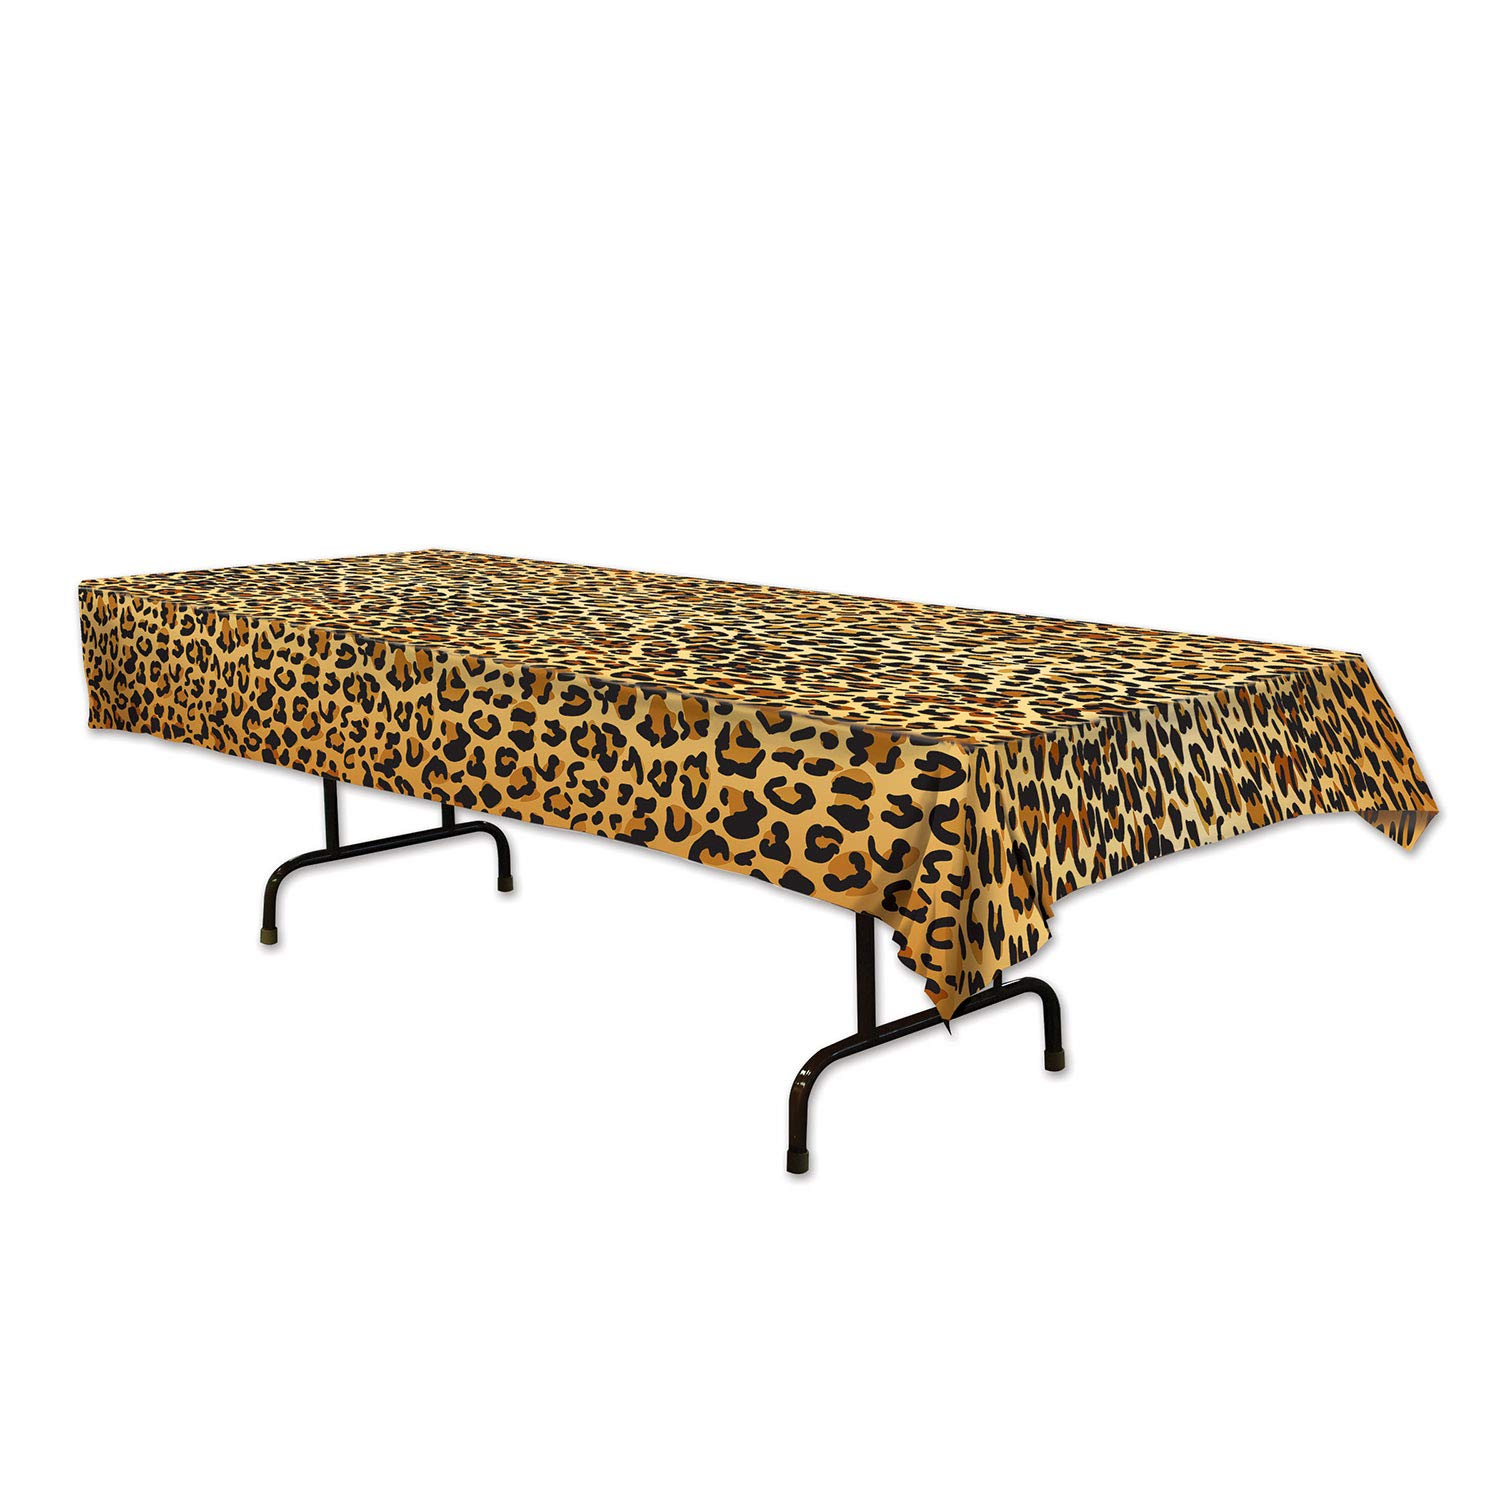 and Tiger Tablecovers Leopard Safari or Jungle Animal Tablecover Bundle Includes Zebra